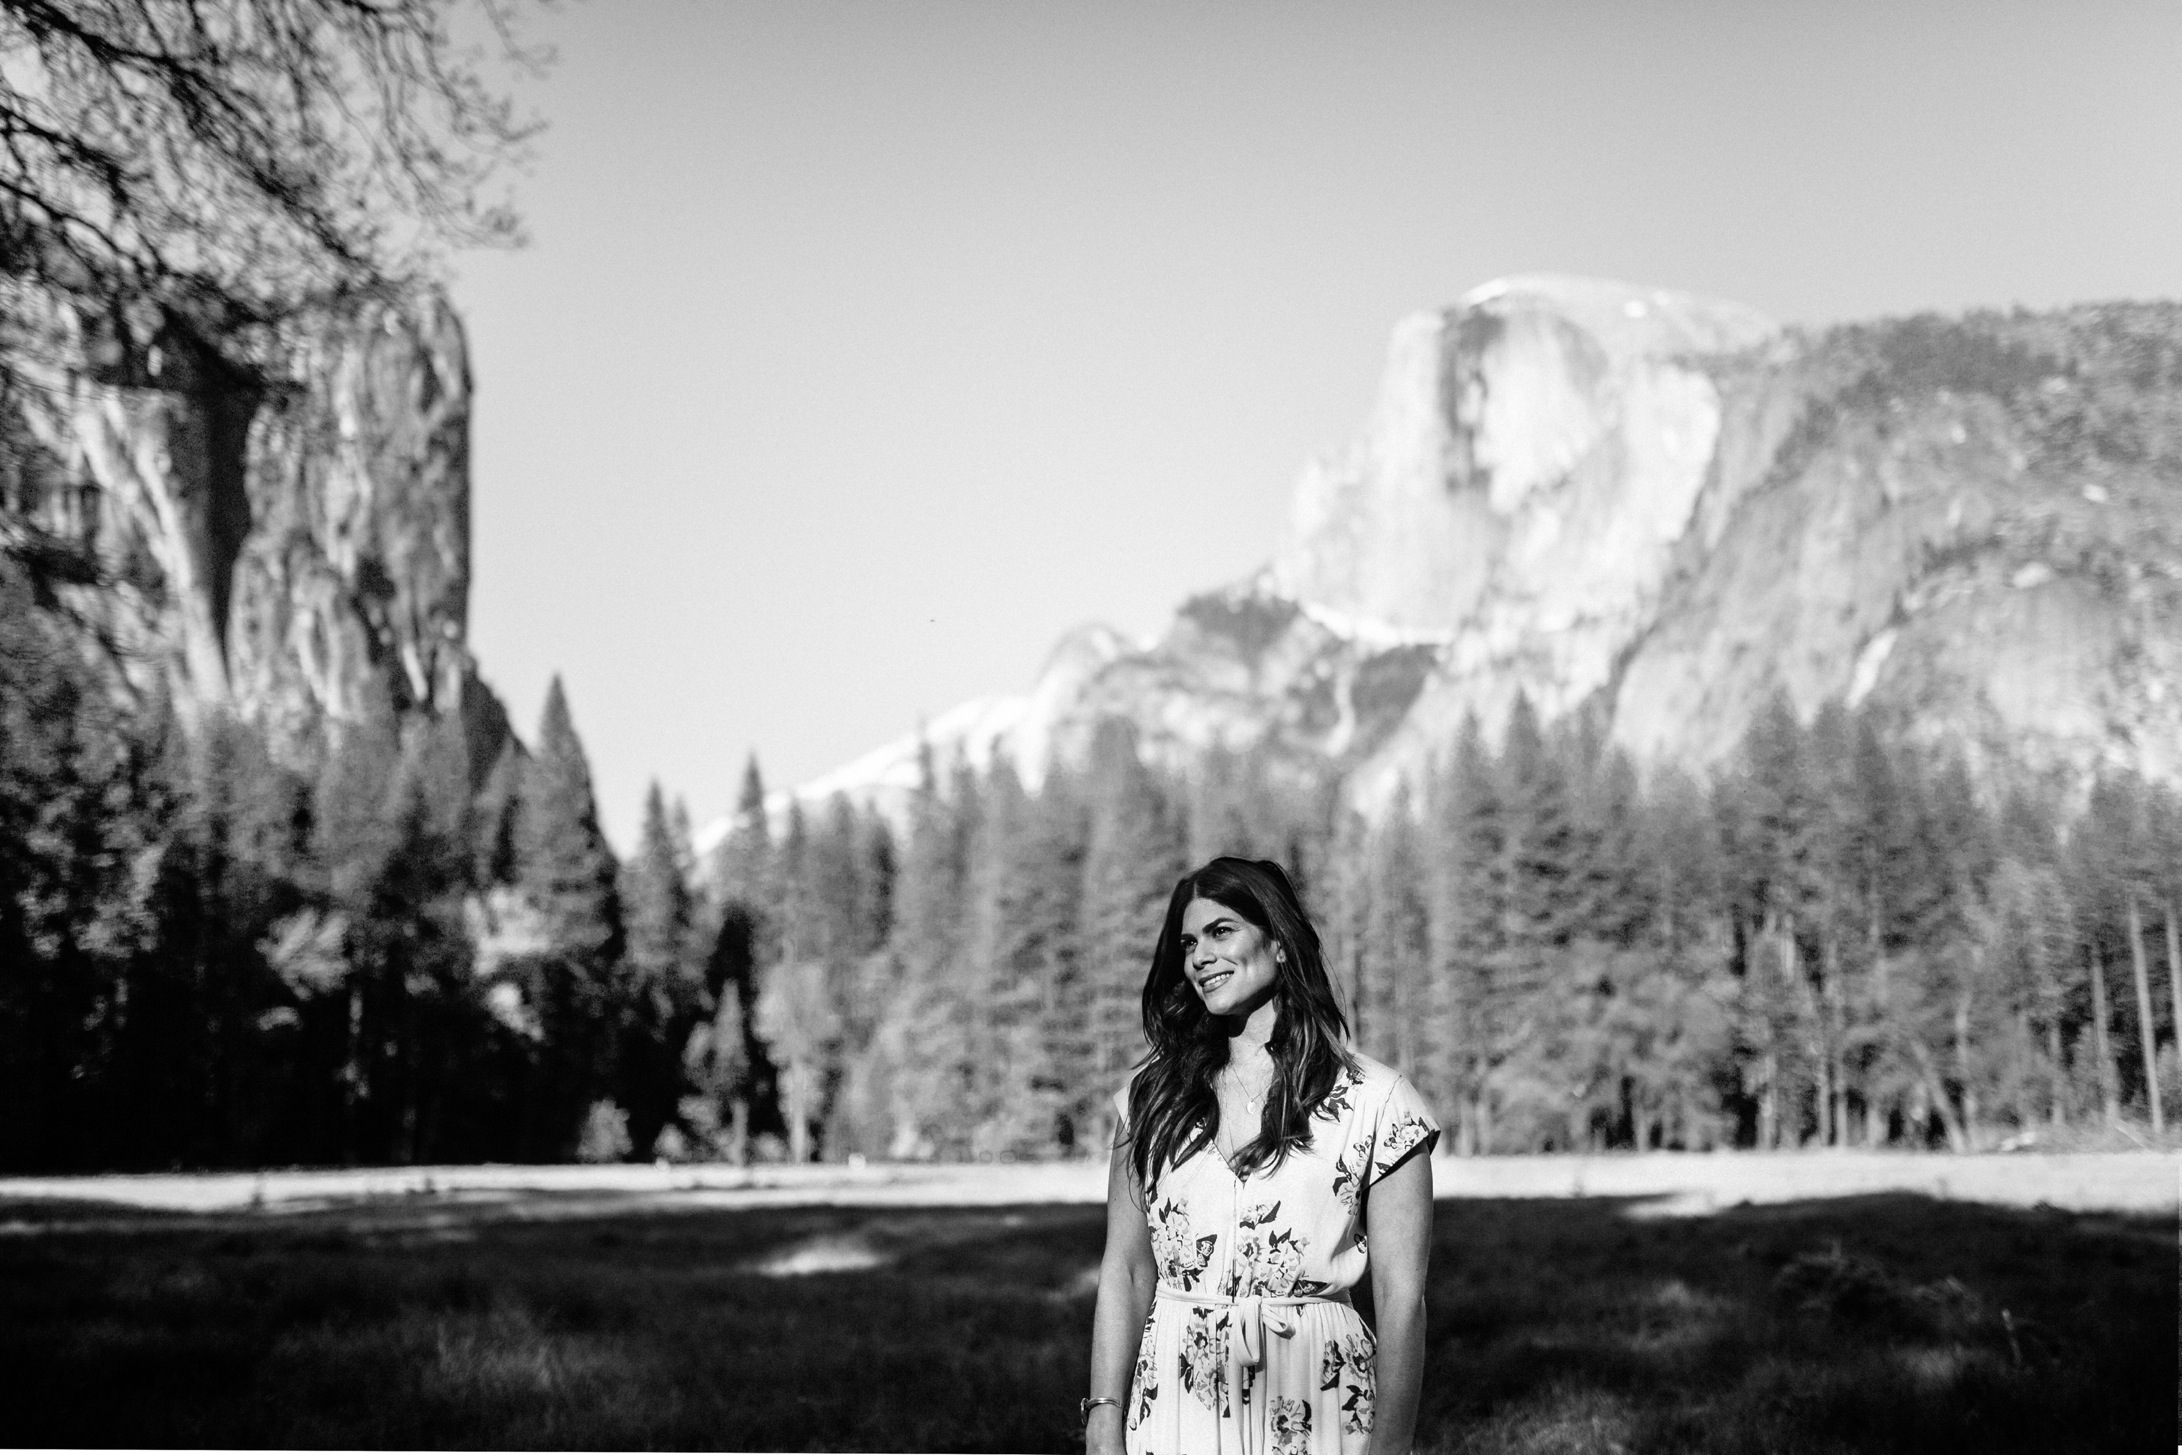 Bride-to-be in front of Half Dome